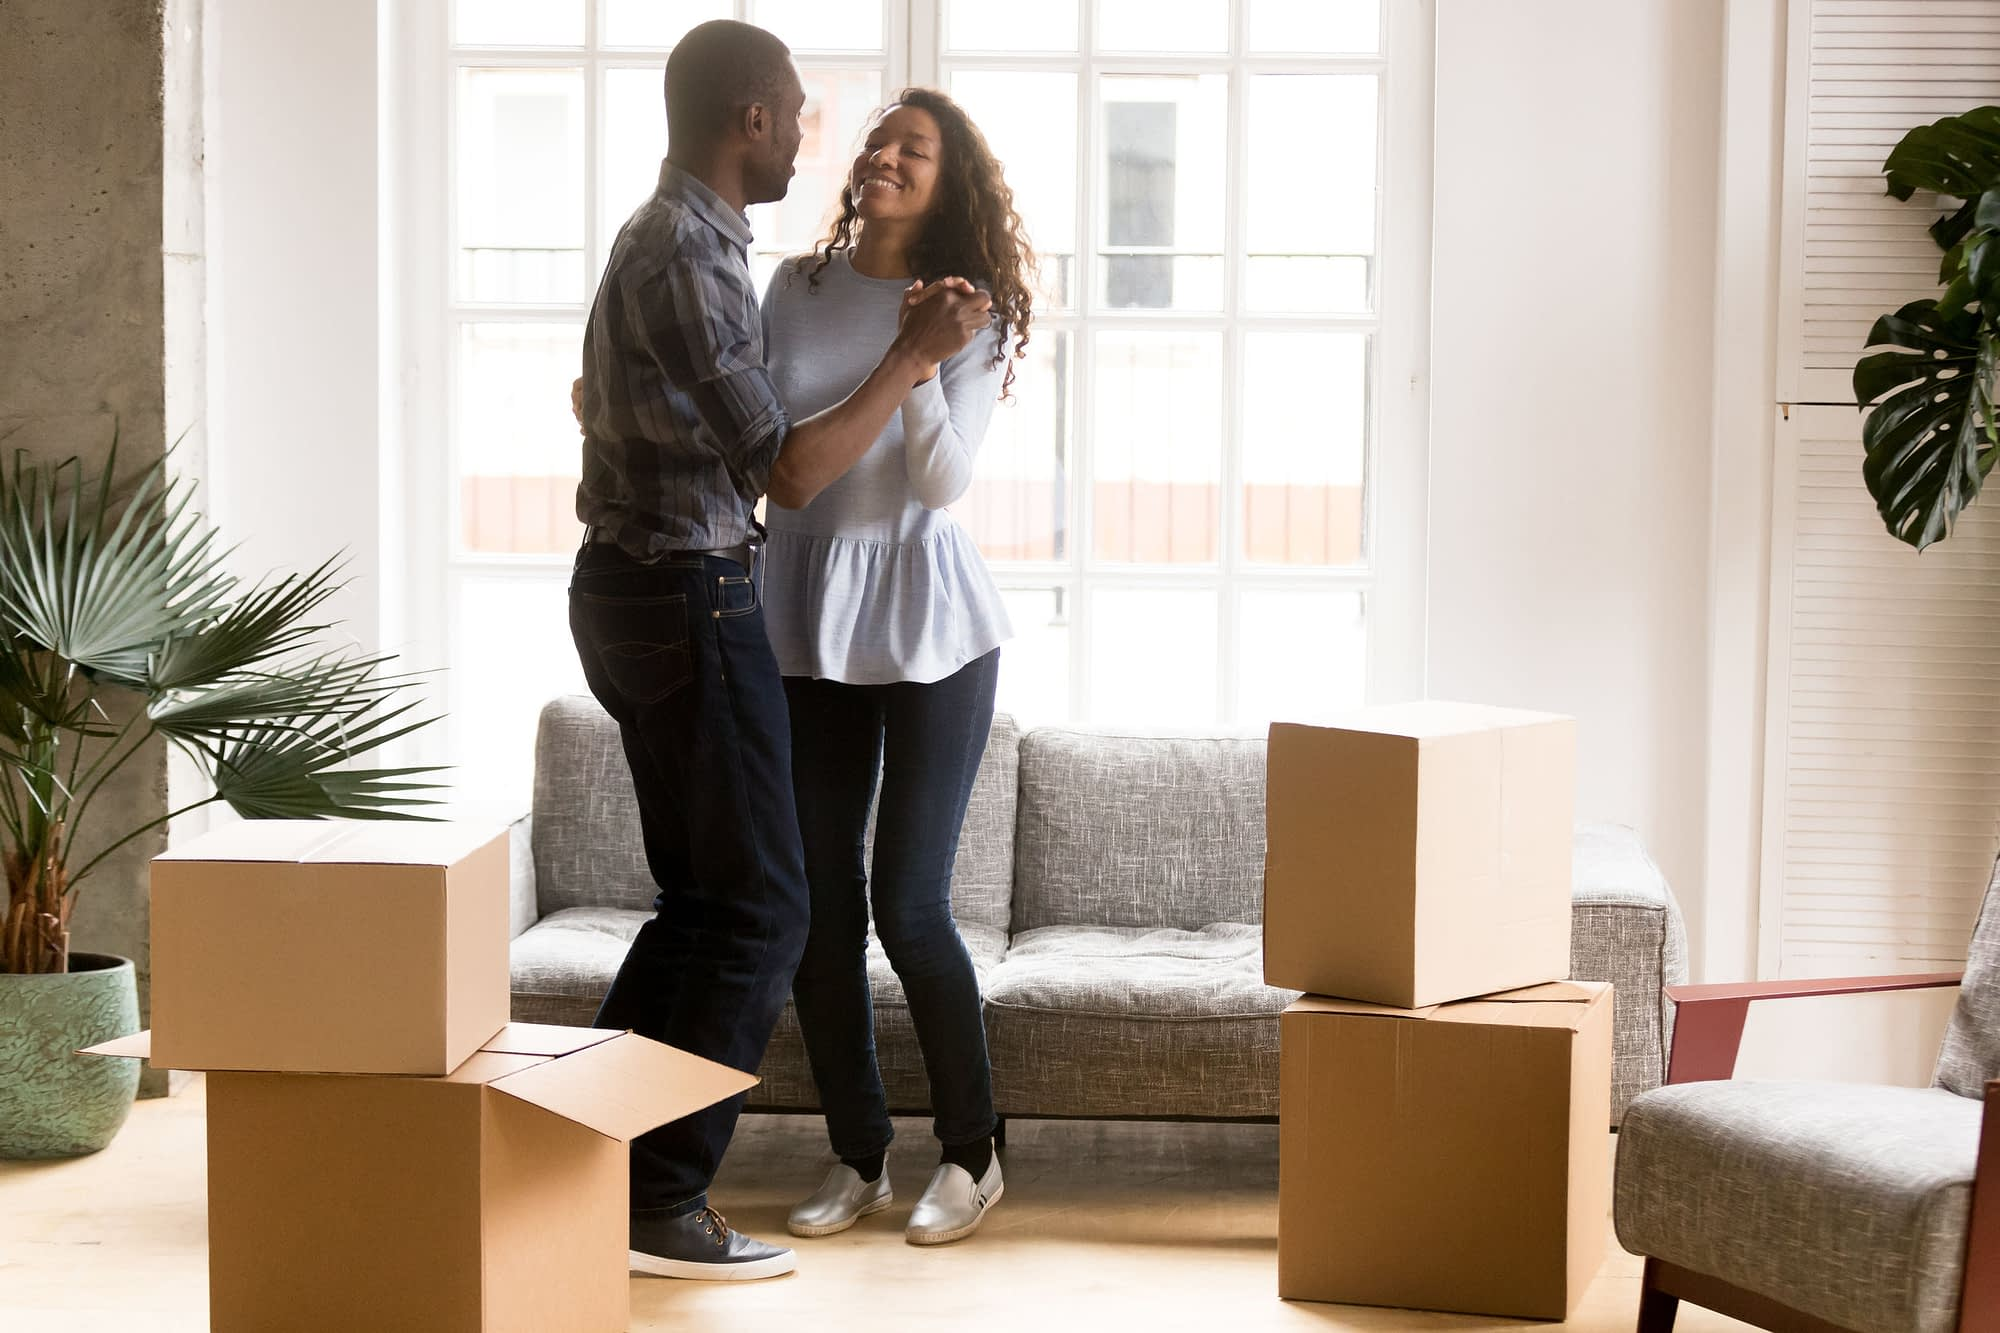 Happy African American couple in love dancing after moving in new house, attractive smiling woman and man celebrating relocating, cardboard boxes with belongings, homeowners in new apartment